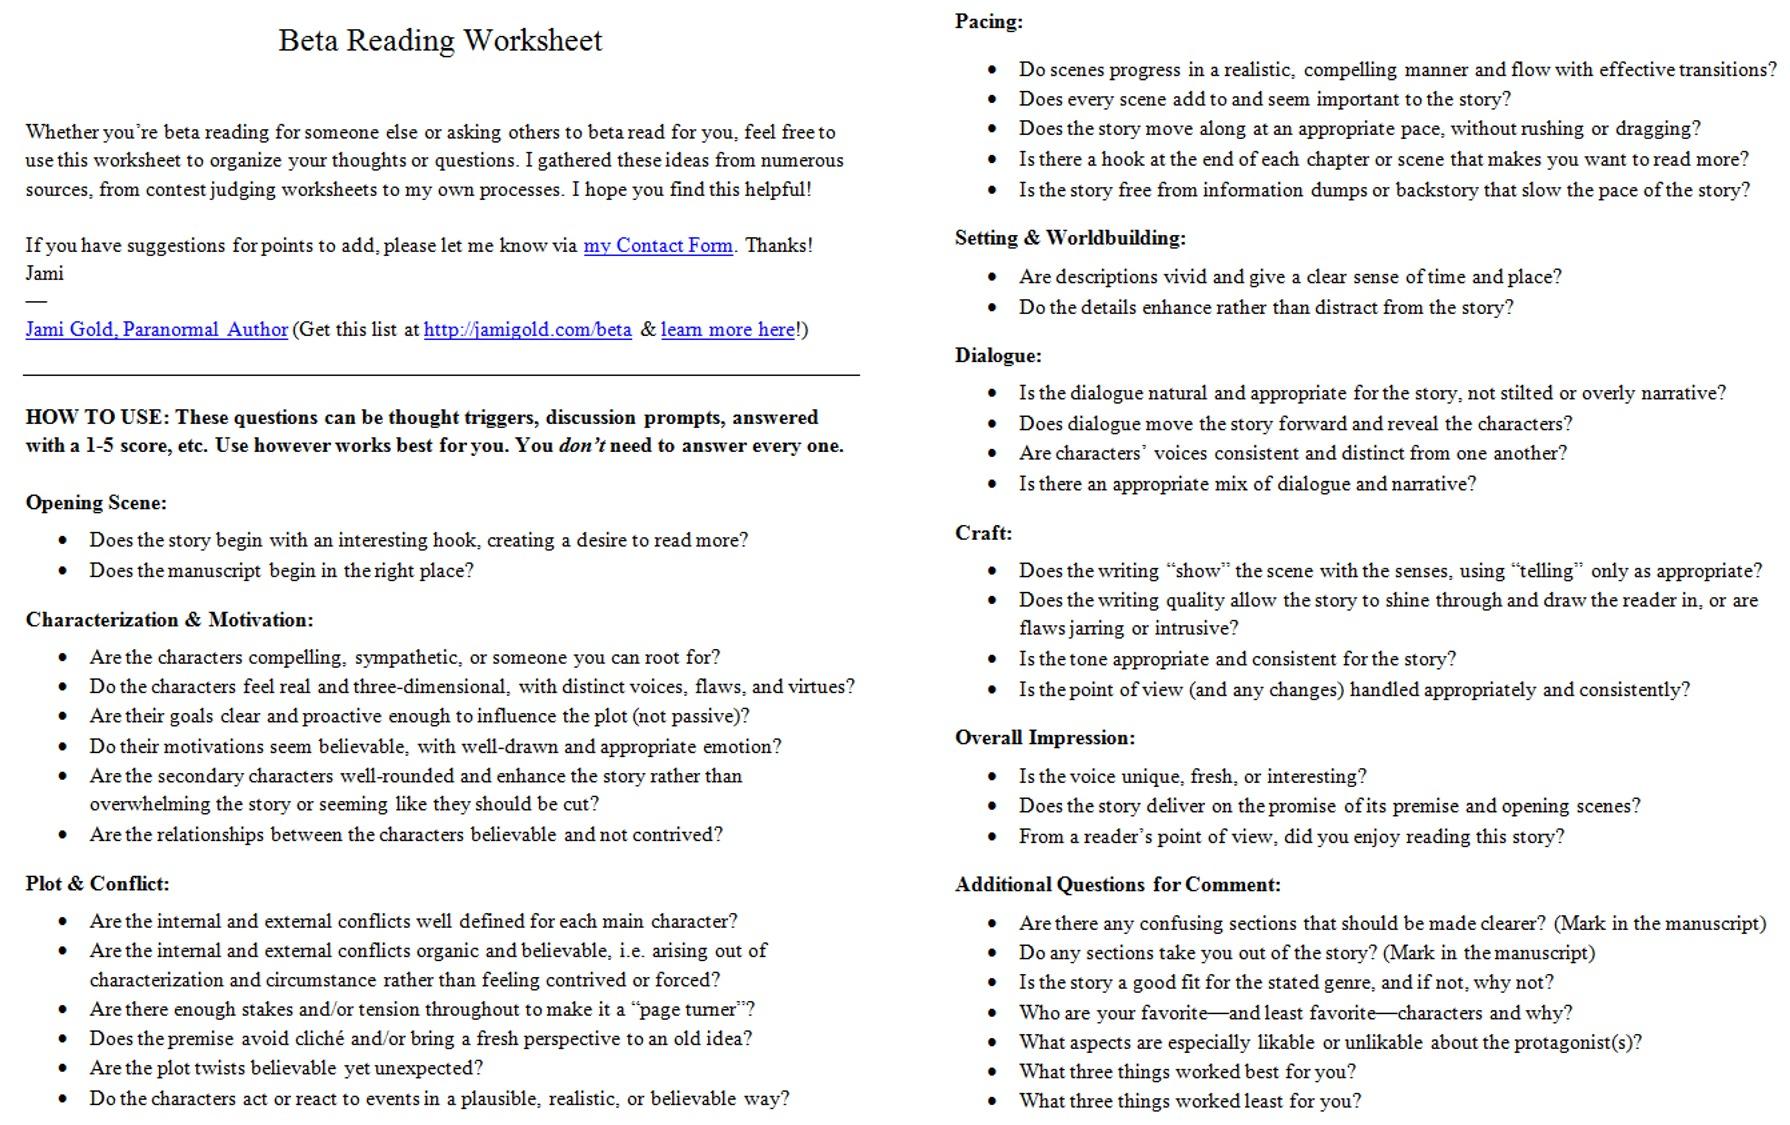 Aldiablosus  Pretty Worksheets For Writers  Jami Gold Paranormal Author With Excellent Screen Shot Of The Twopage Beta Reading Worksheet With Beauteous An Family Words Worksheets Also Make Your Own Maths Worksheets In Addition Jr Kg Worksheet Maths And Worksheet For Class  Maths As Well As English Free Printable Worksheets Additionally The Digestive System Worksheets From Jamigoldcom With Aldiablosus  Excellent Worksheets For Writers  Jami Gold Paranormal Author With Beauteous Screen Shot Of The Twopage Beta Reading Worksheet And Pretty An Family Words Worksheets Also Make Your Own Maths Worksheets In Addition Jr Kg Worksheet Maths From Jamigoldcom